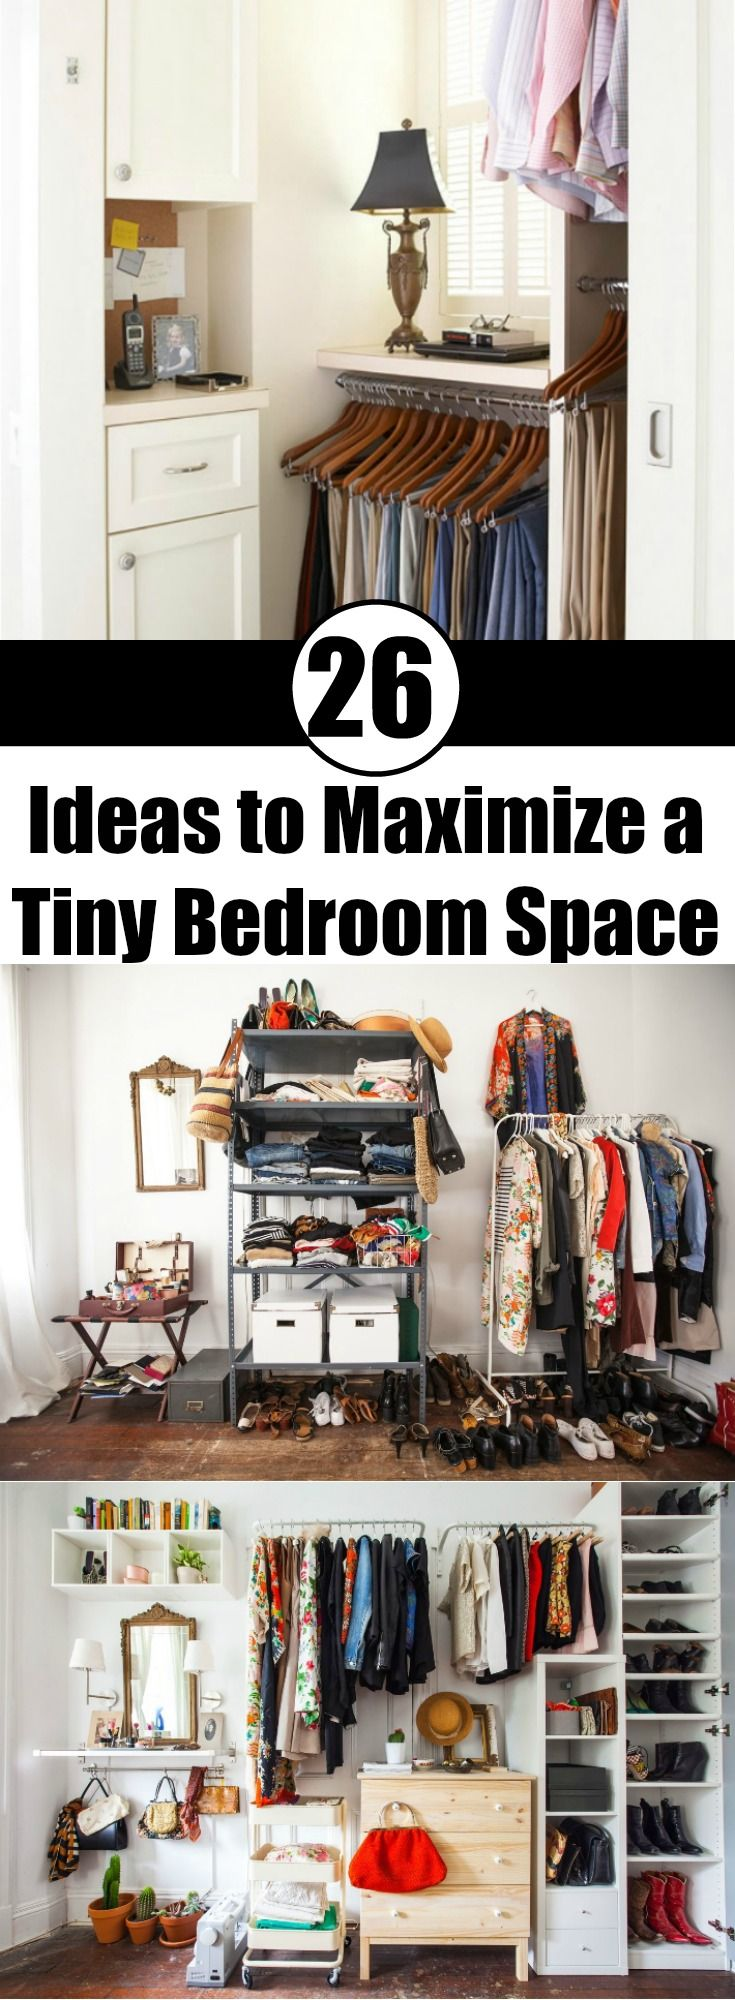 Very small bedroom solutions - 26 Ideas To Maximize A Tiny Bedroom Space